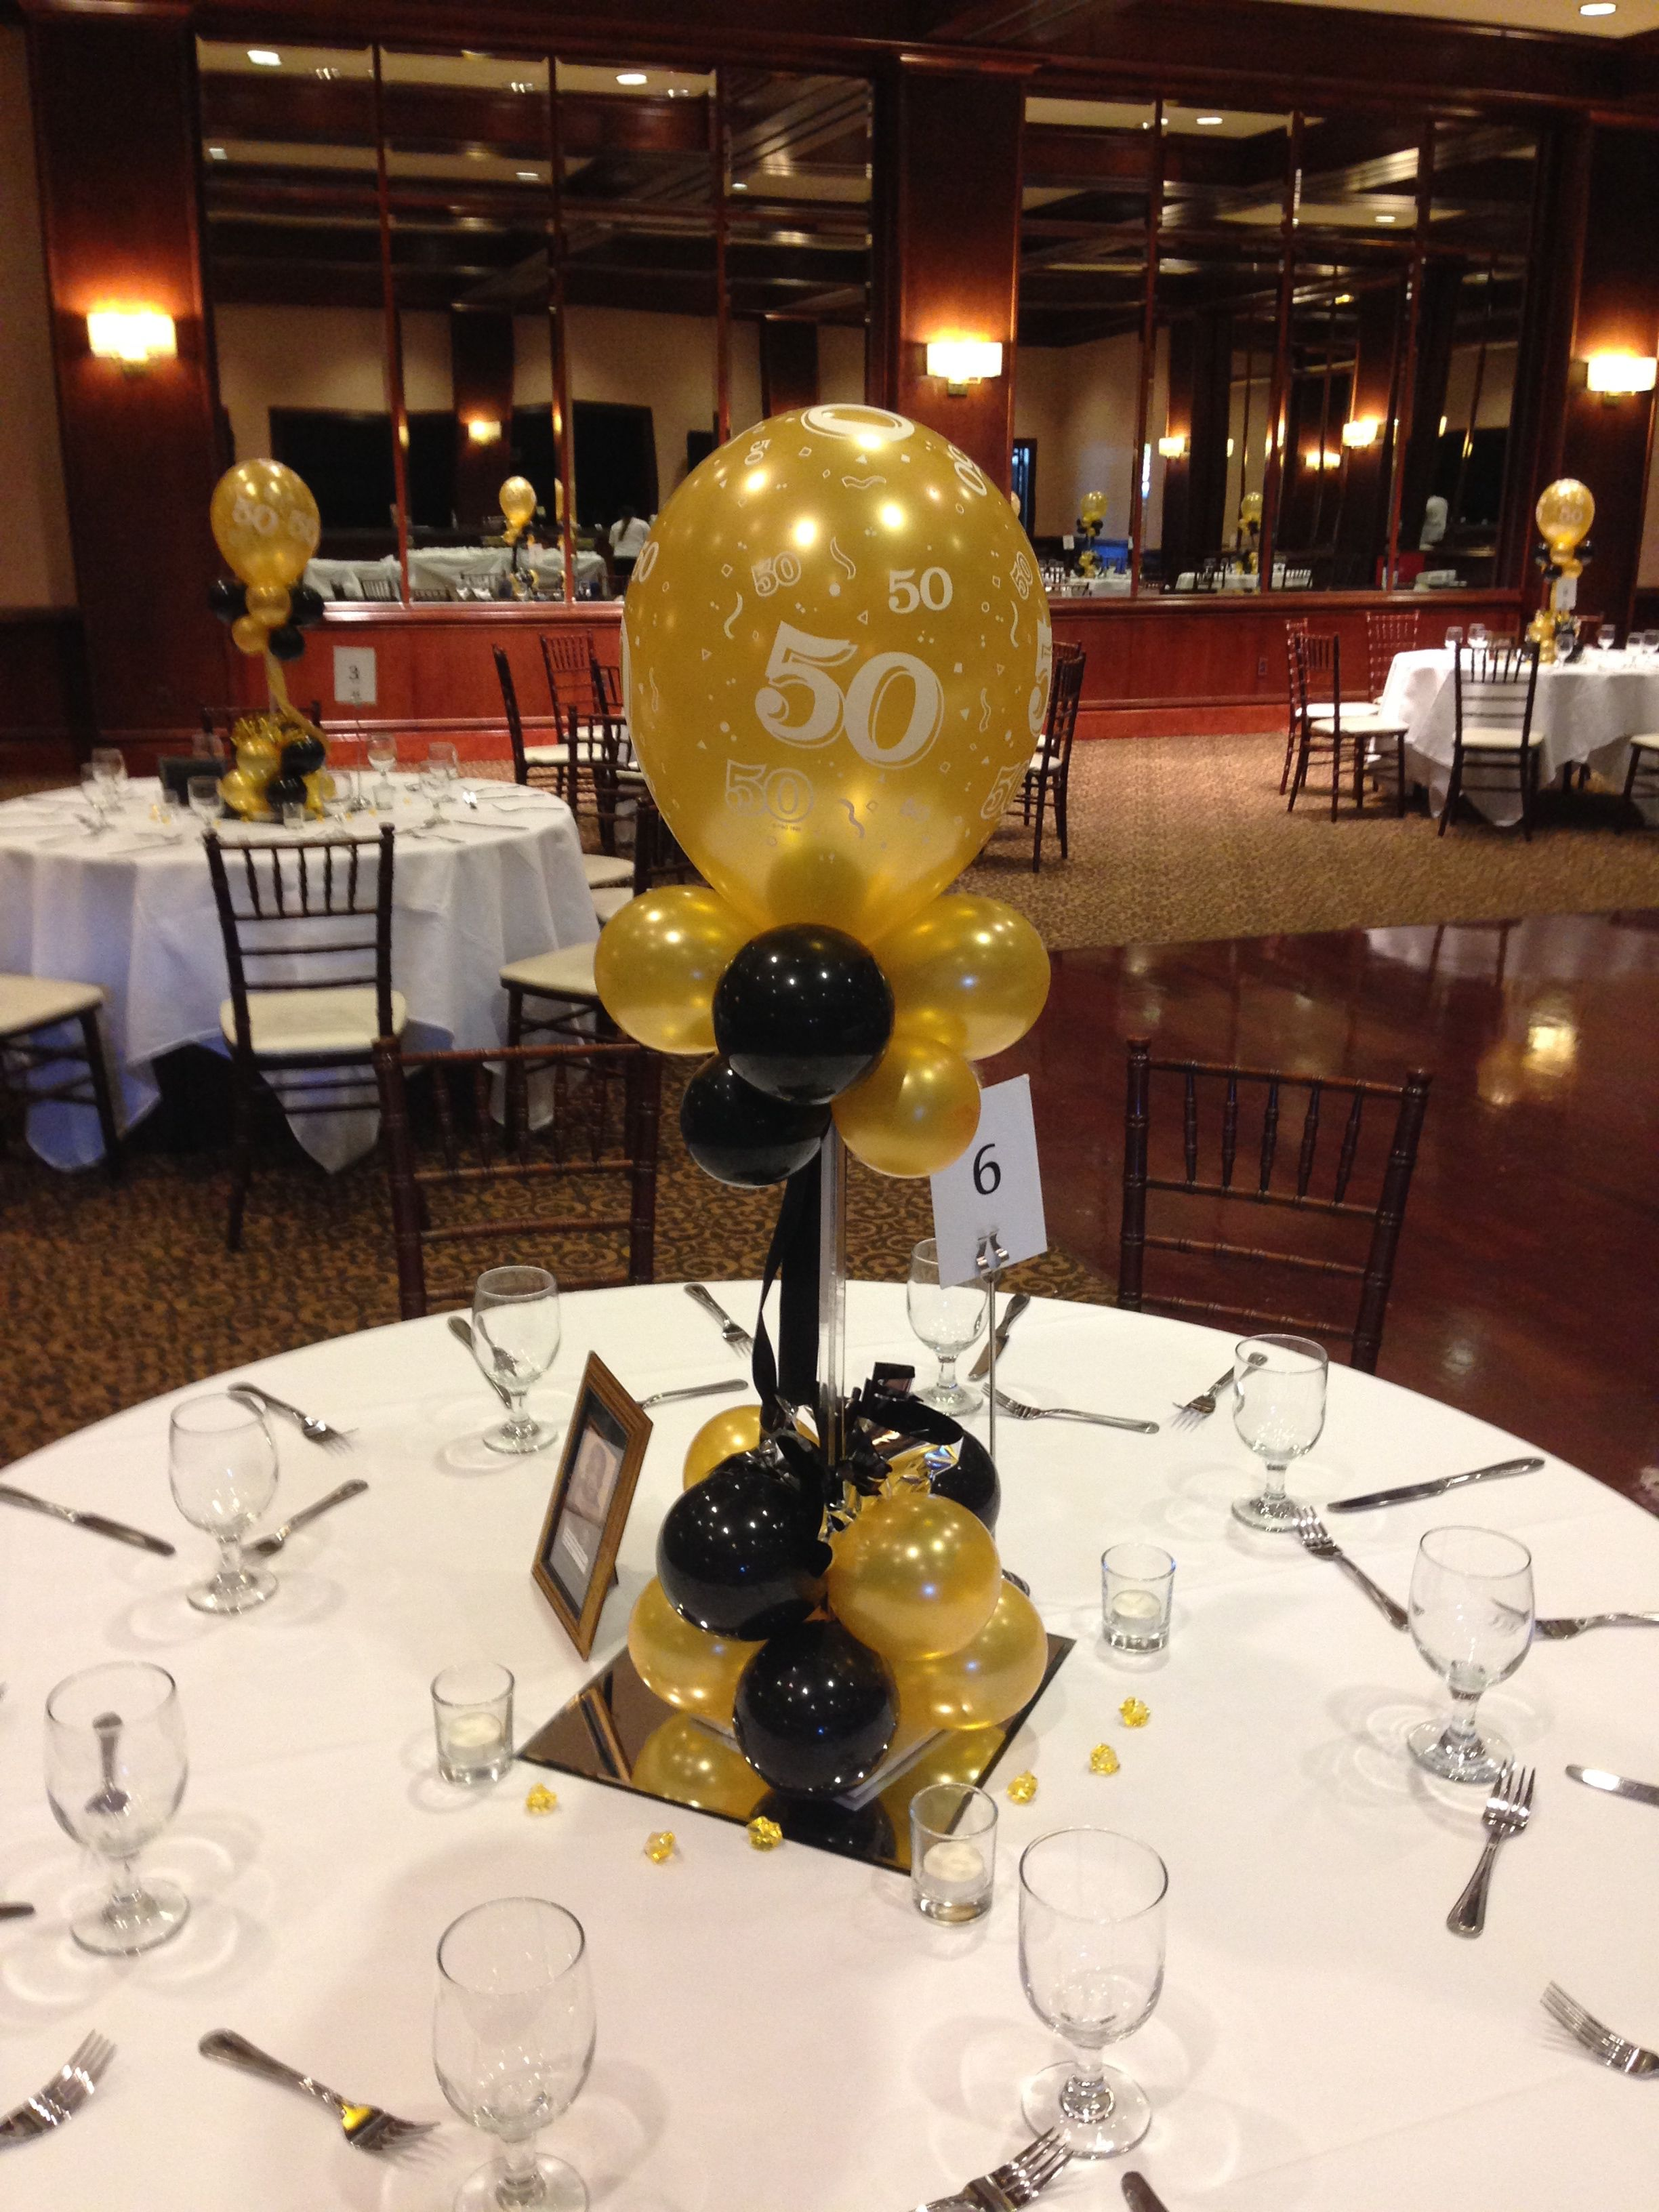 50th birthday party ideas ; eeec93e113ee948f8ed2600f20acb044